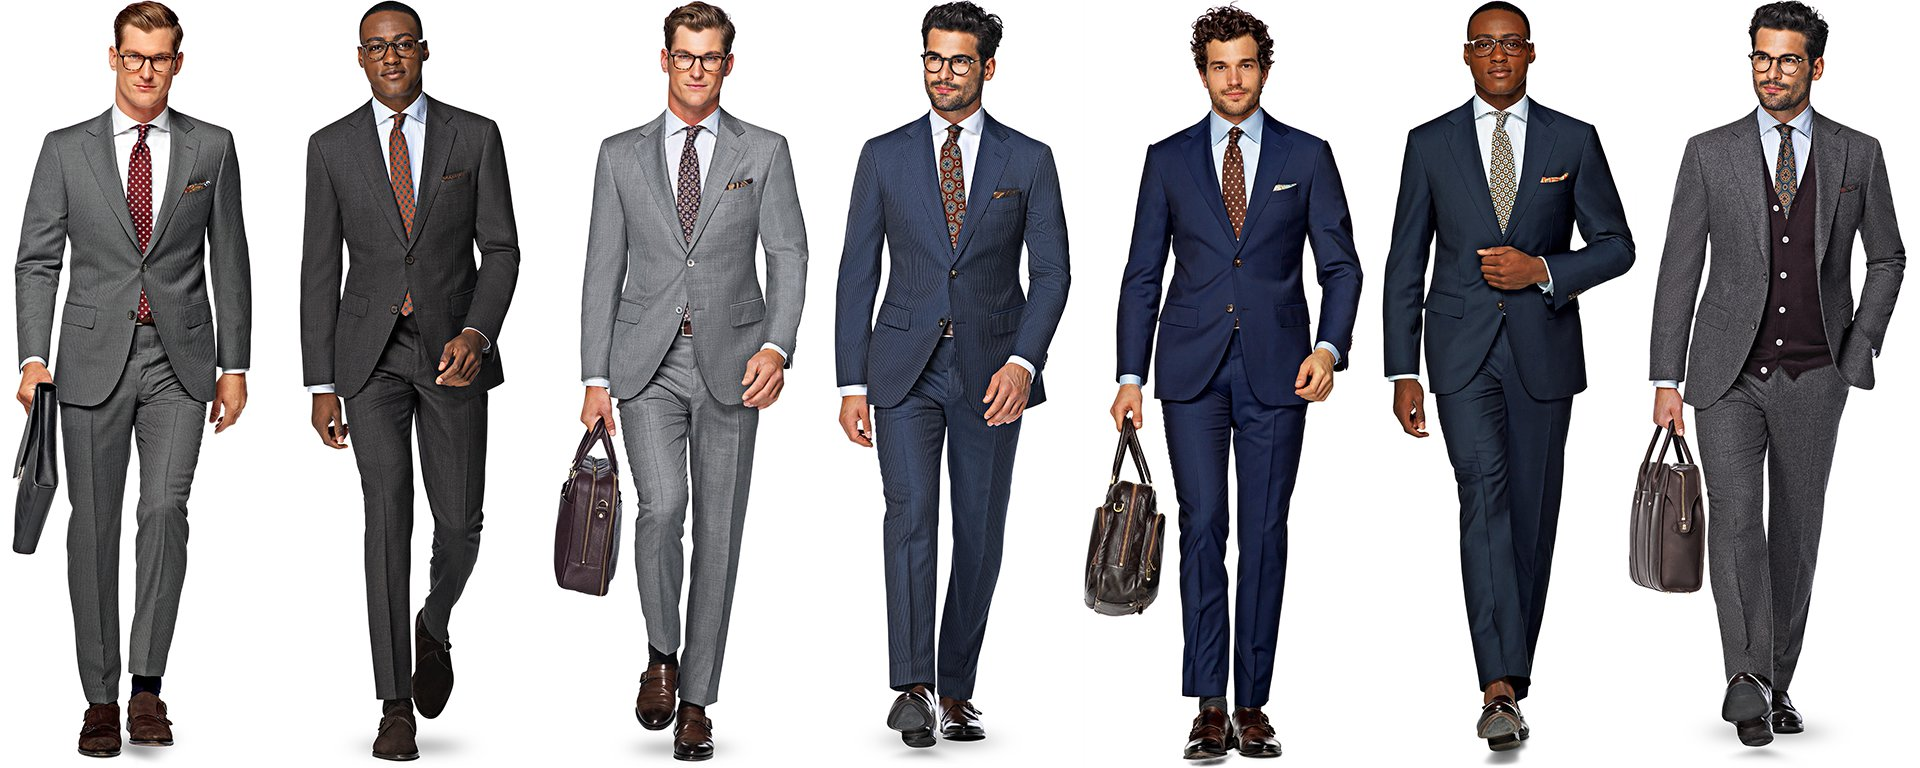 The Considerable Value of Suitsupply's Blue Line